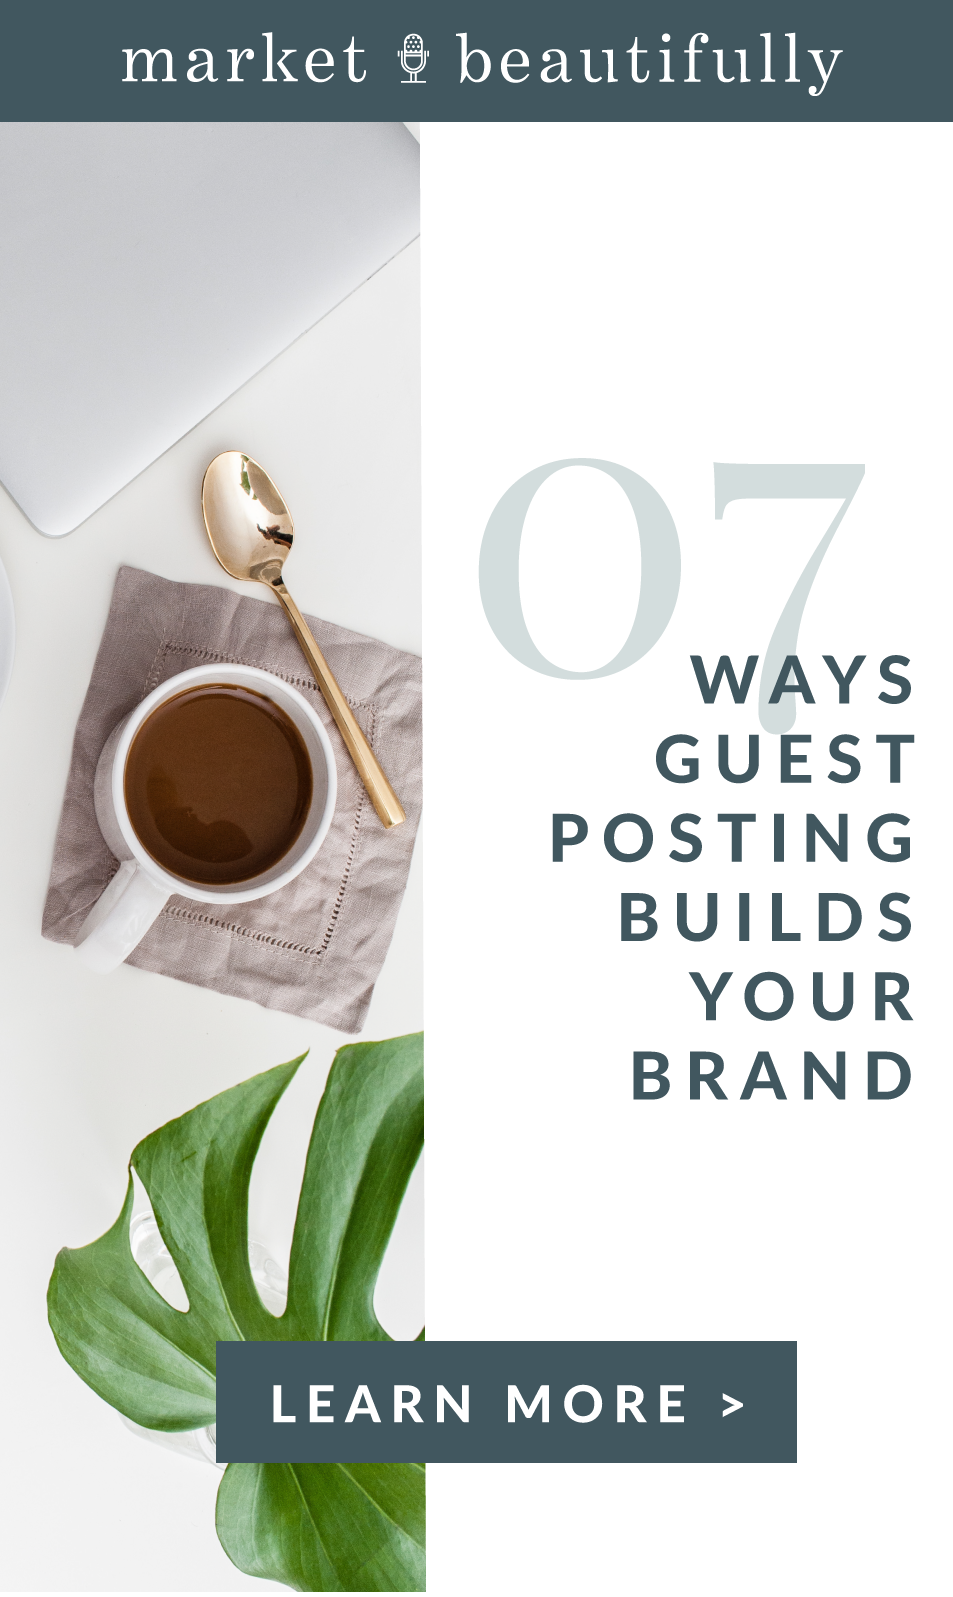 Guest Posting Benefits: 7 Ways Guest Posting Builds Your Brand